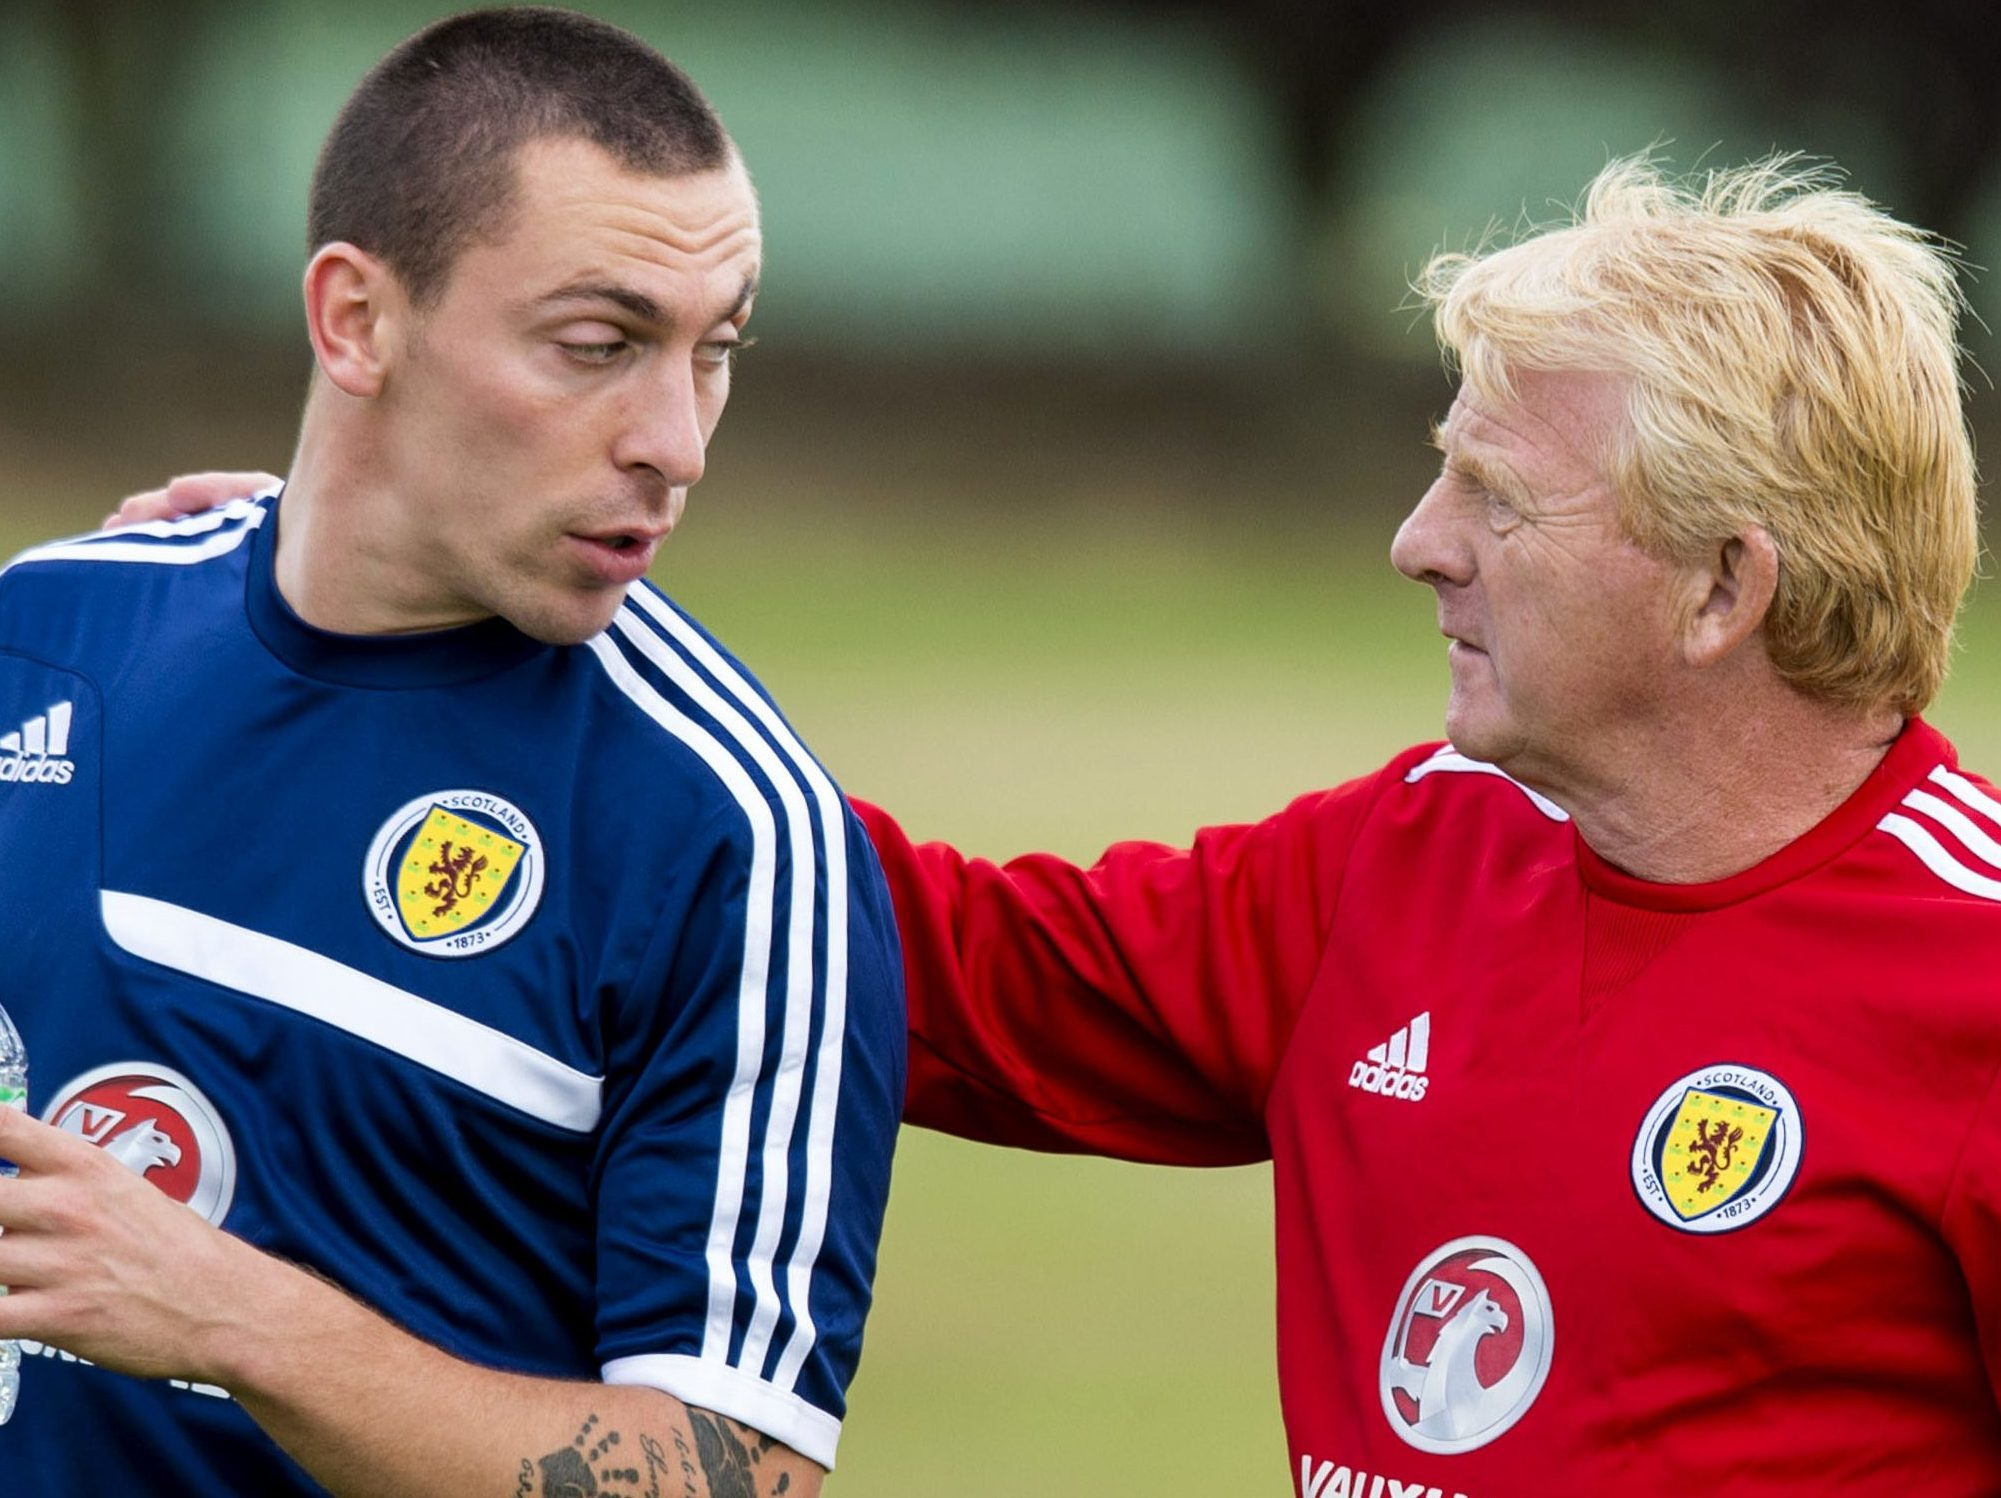 Soon to be reunited - Scott Brown and Gordon Strachan.